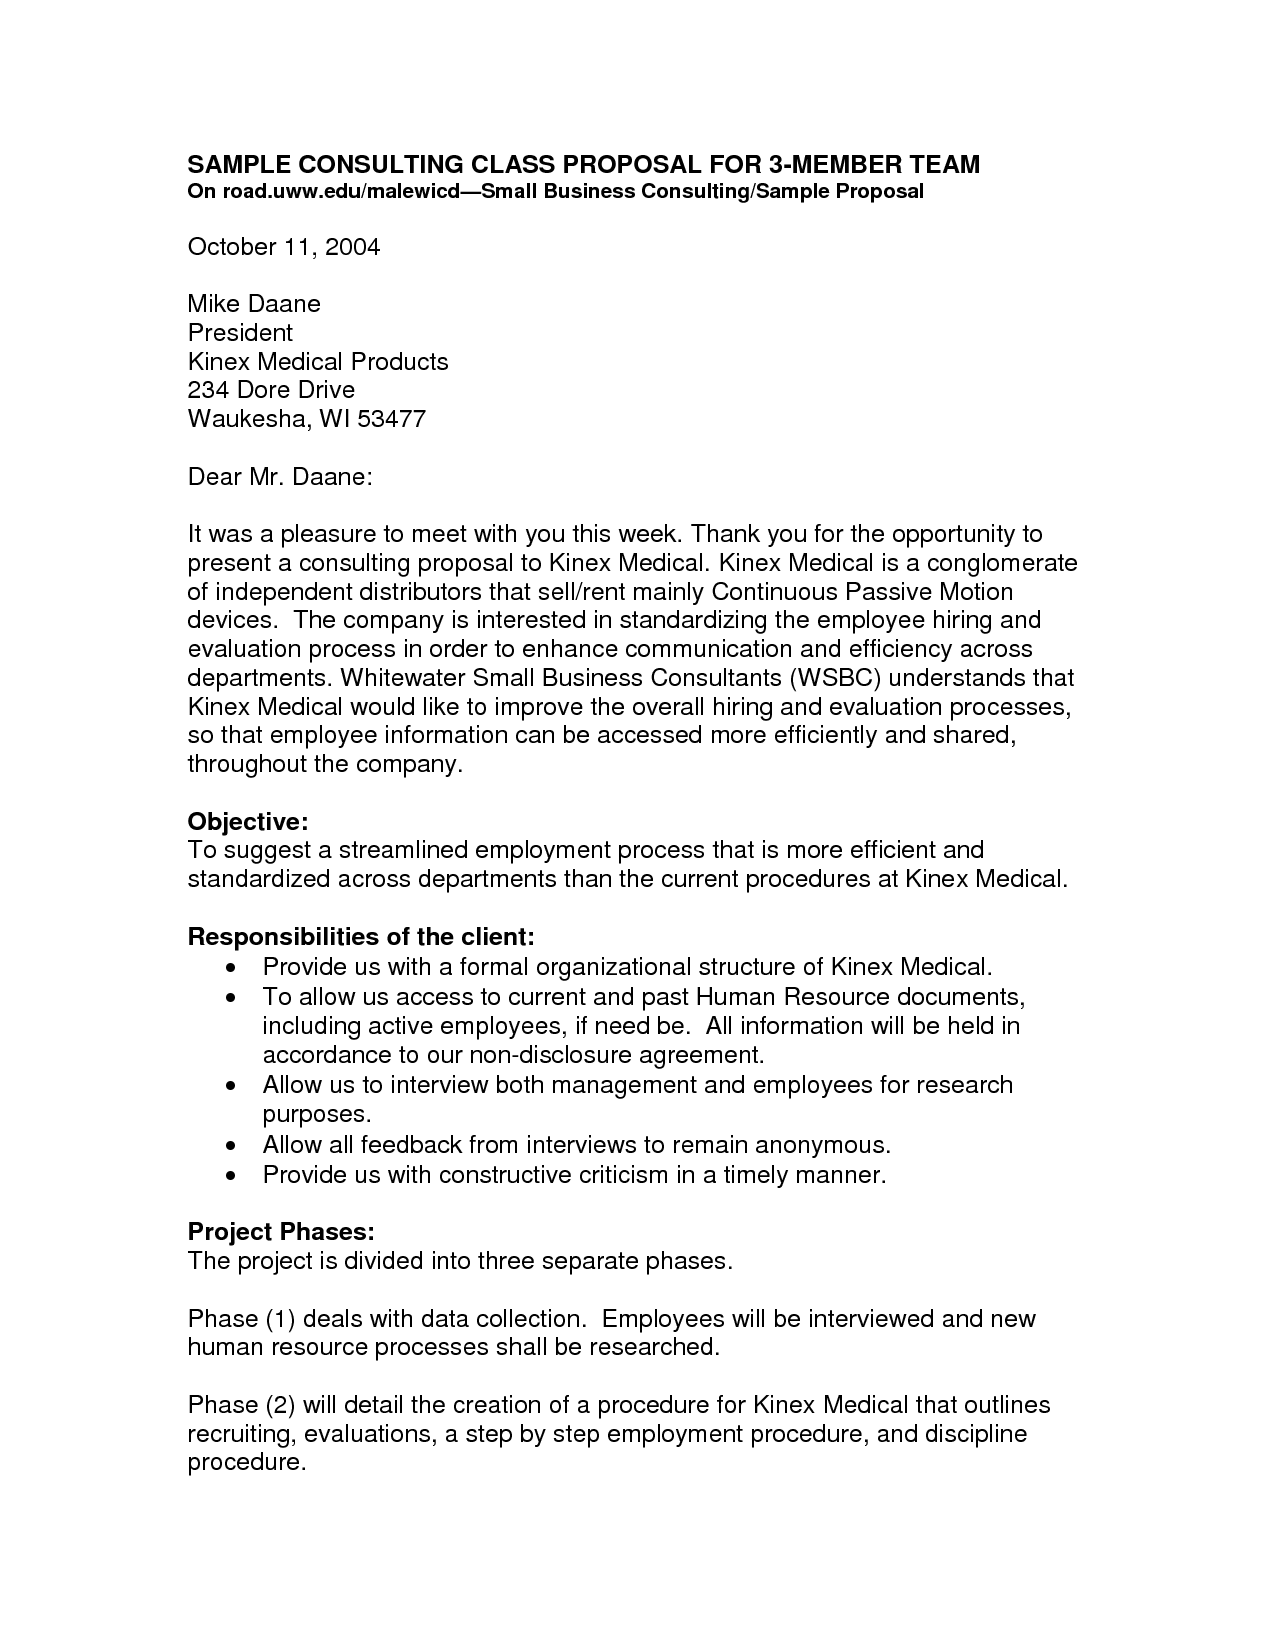 Example Of Essay Proposal Essay Proposal Sample Example Essay Plan  Essay Proposal Example Medizinische Dissertationen Deutschland Business  Proposal Cover Letter Thingshare Cobusiness Proposal Cover Letter Business